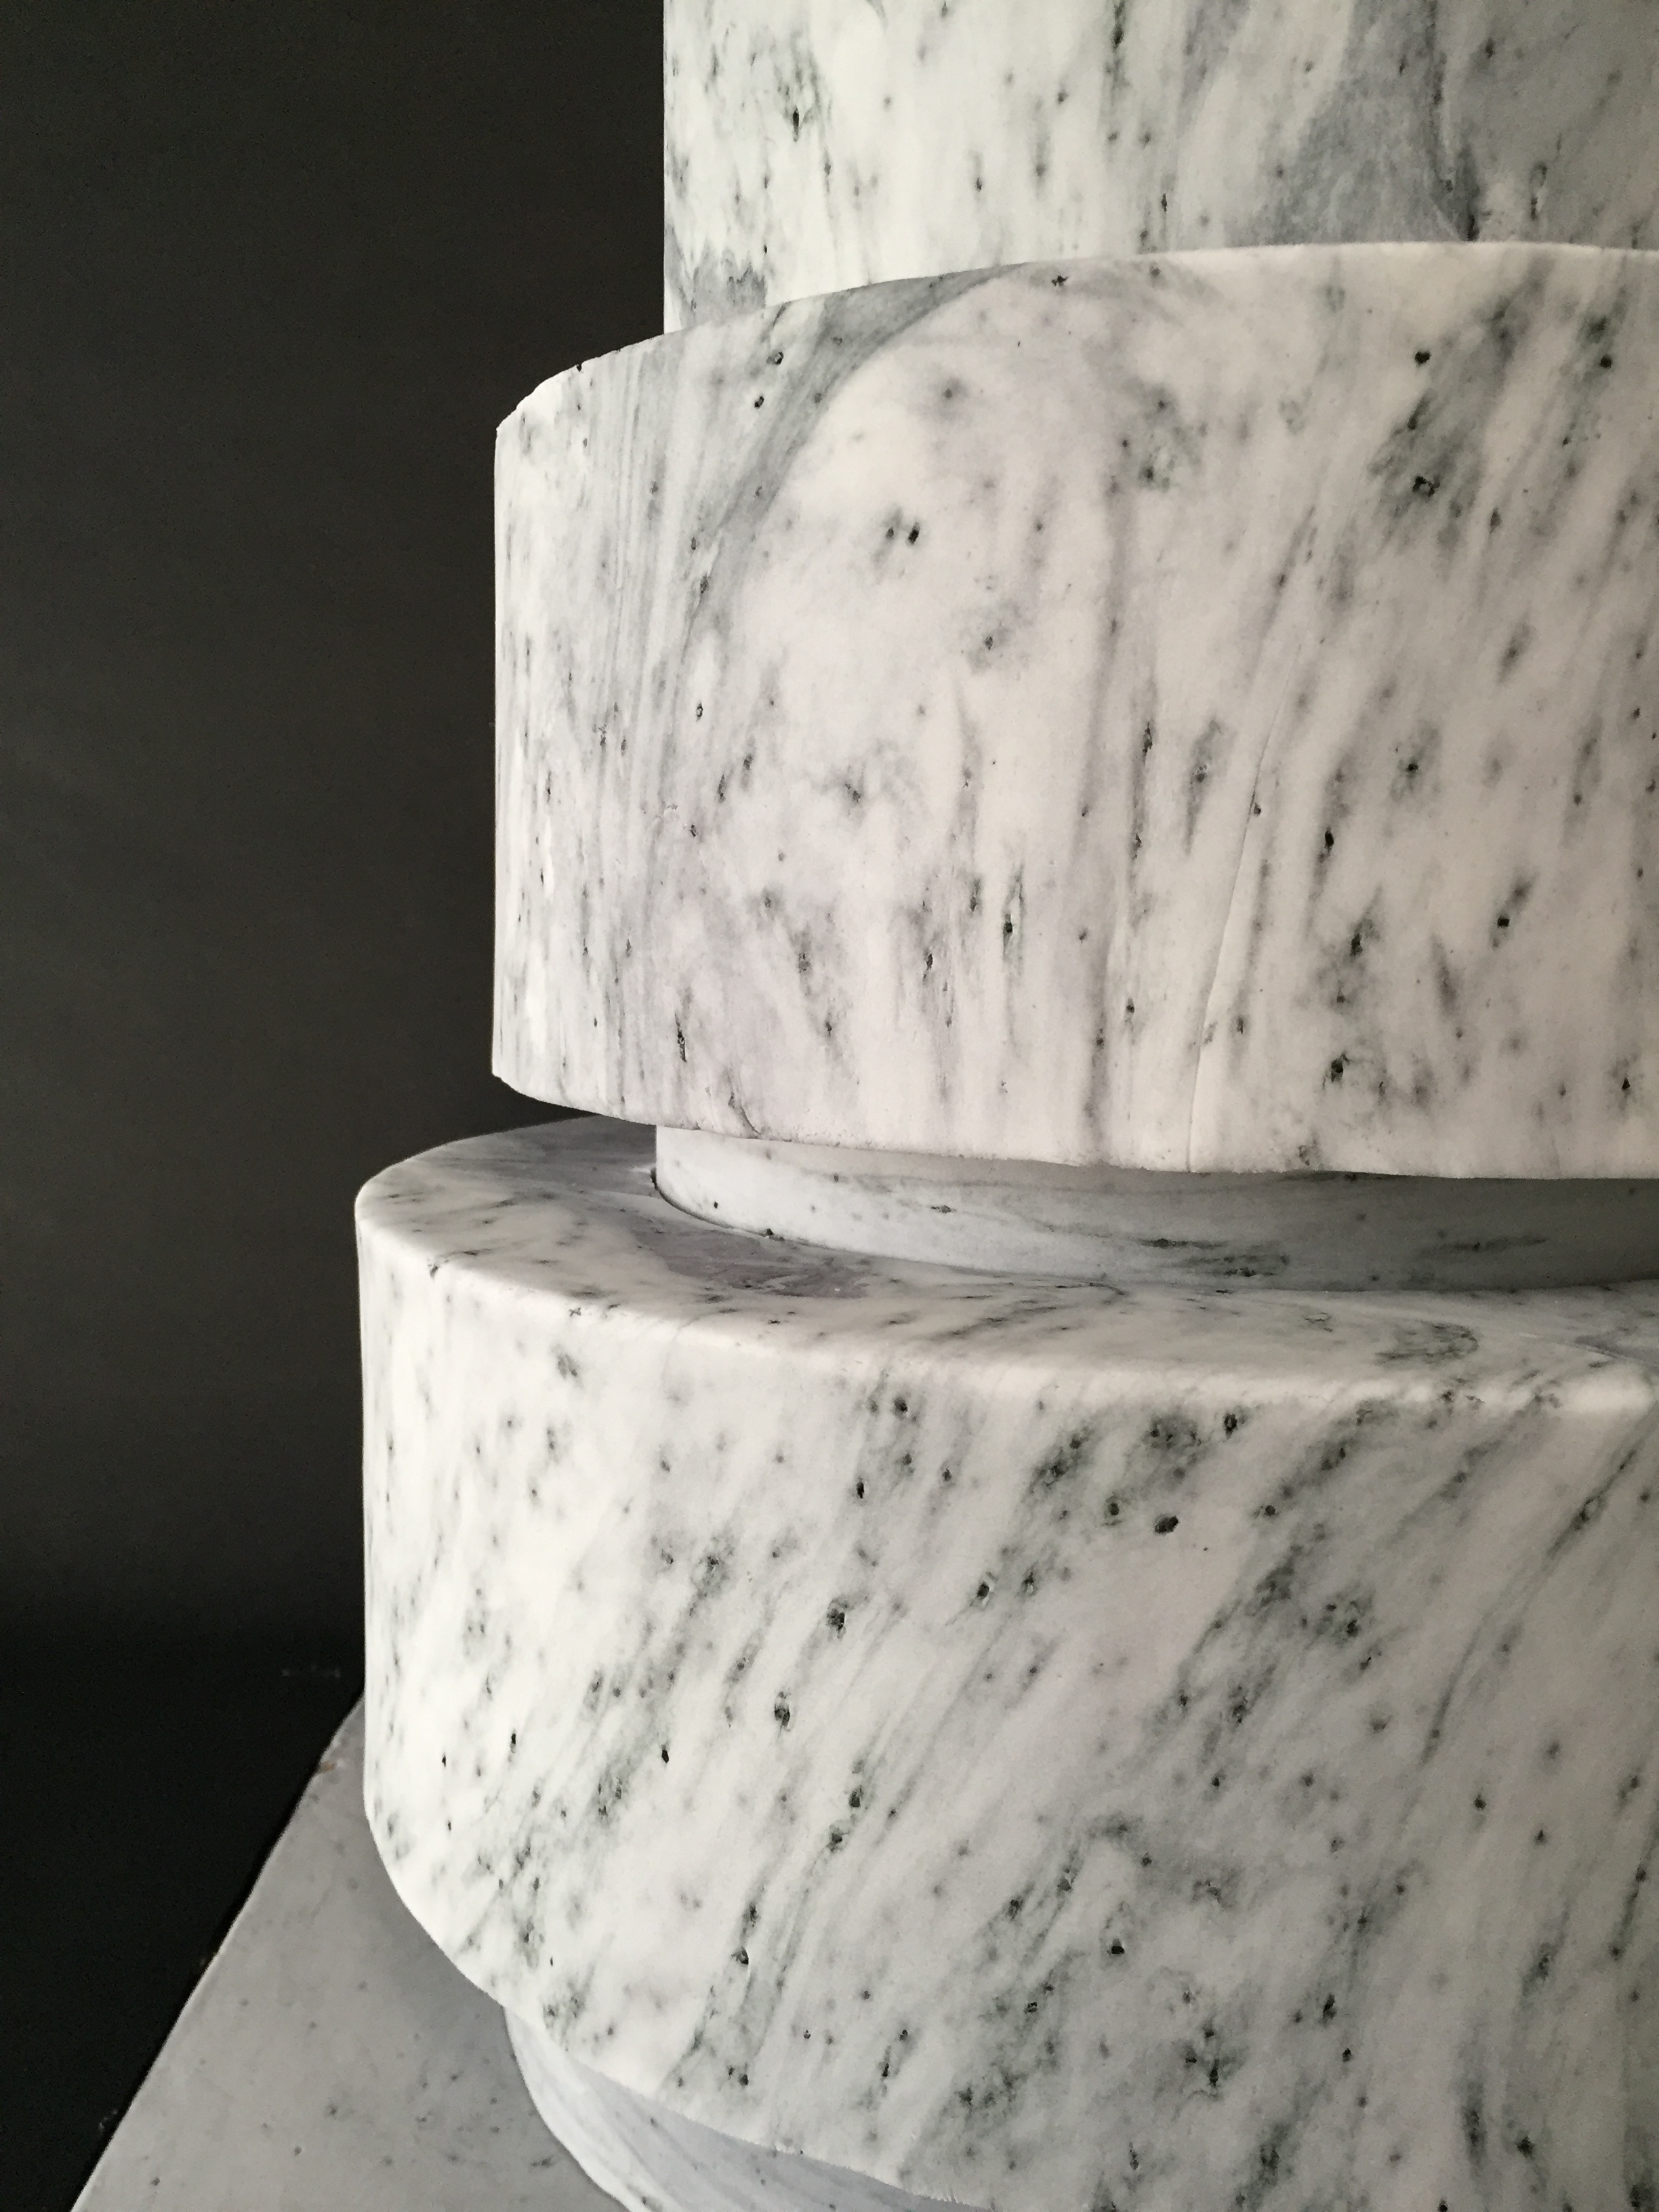 Speckled Marble appearance…